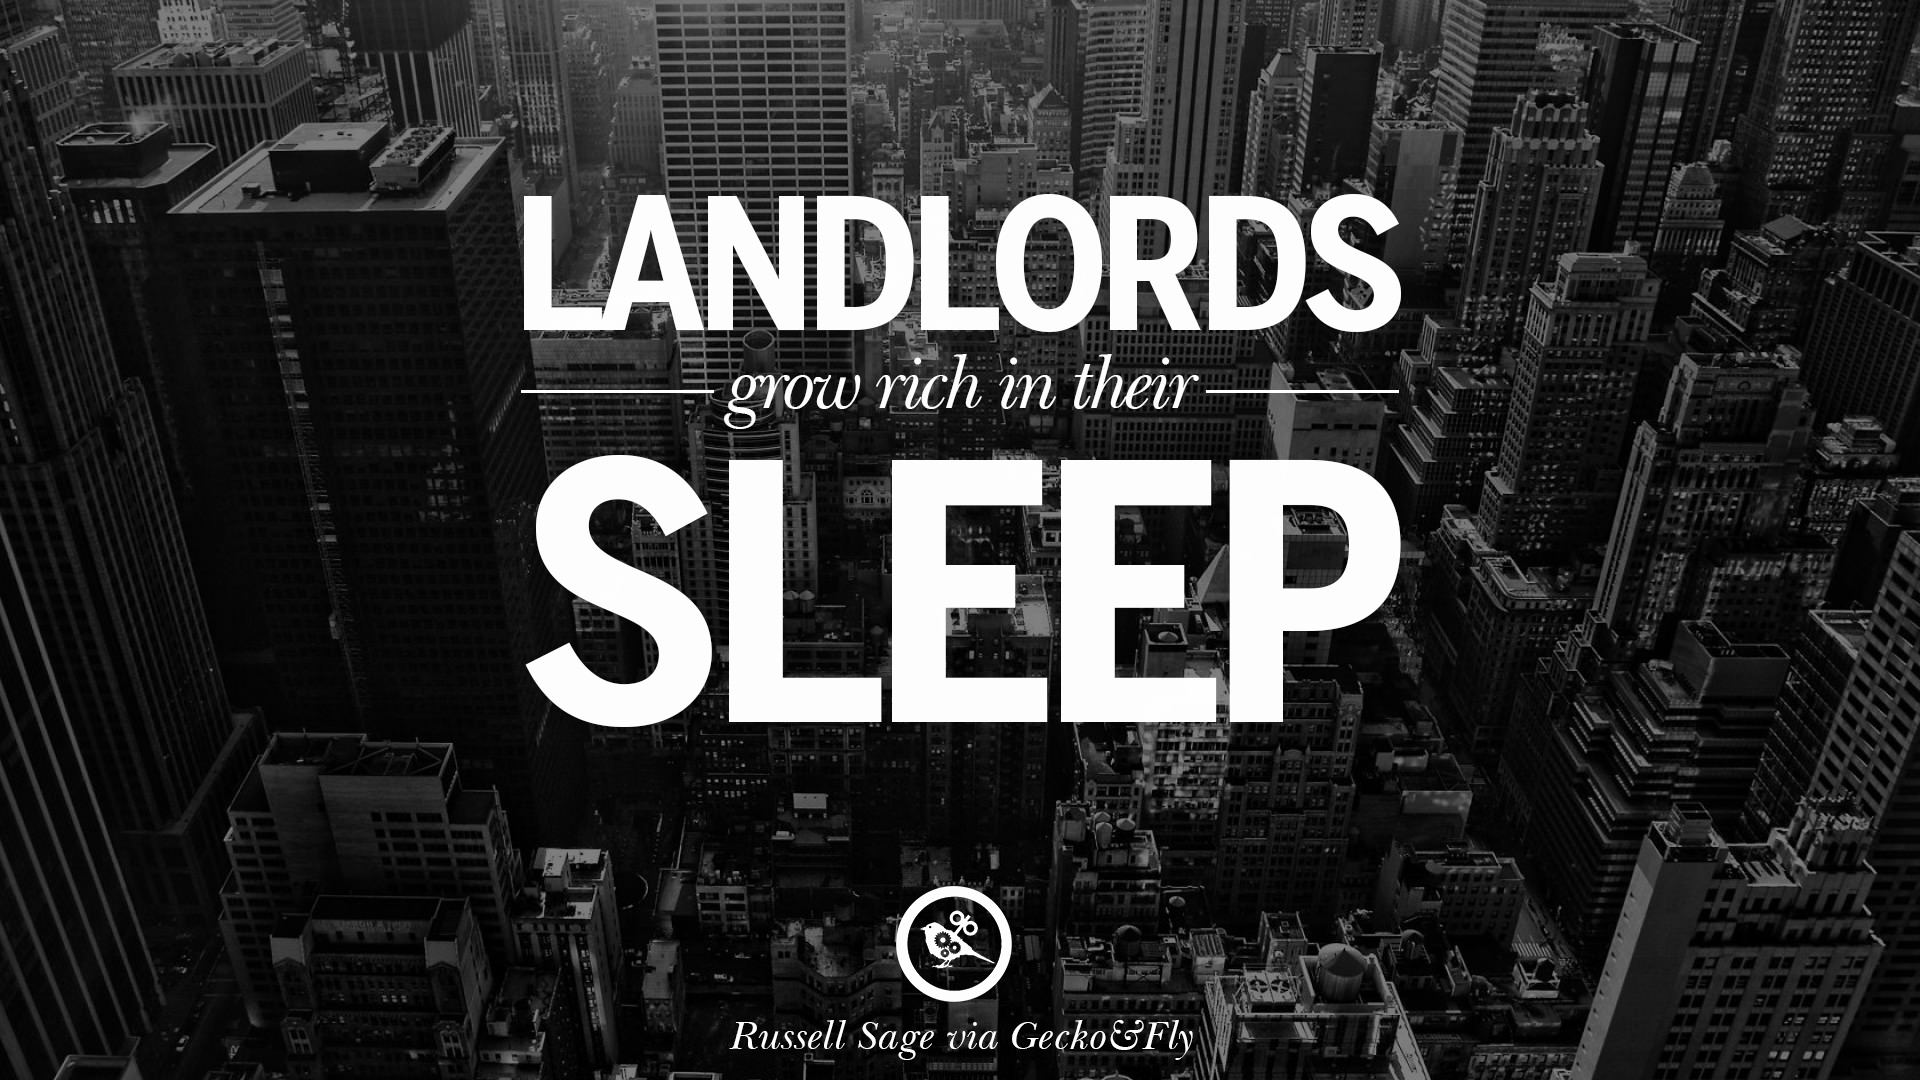 property-investment-investing-quotes-01.jpg